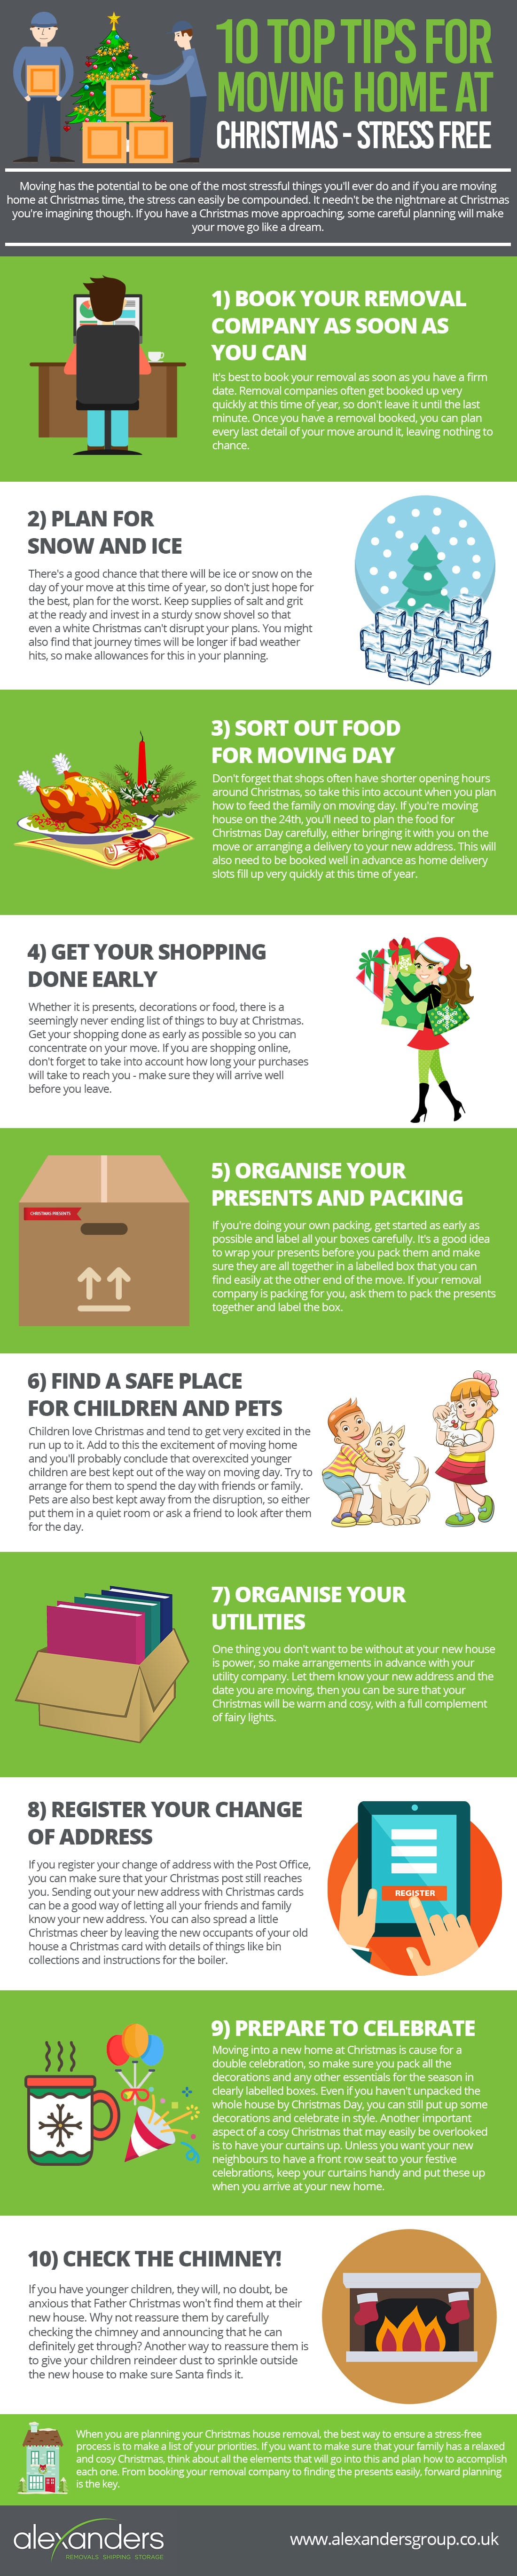 Ten Top Tips For Moving Home At Christmas Stress Free